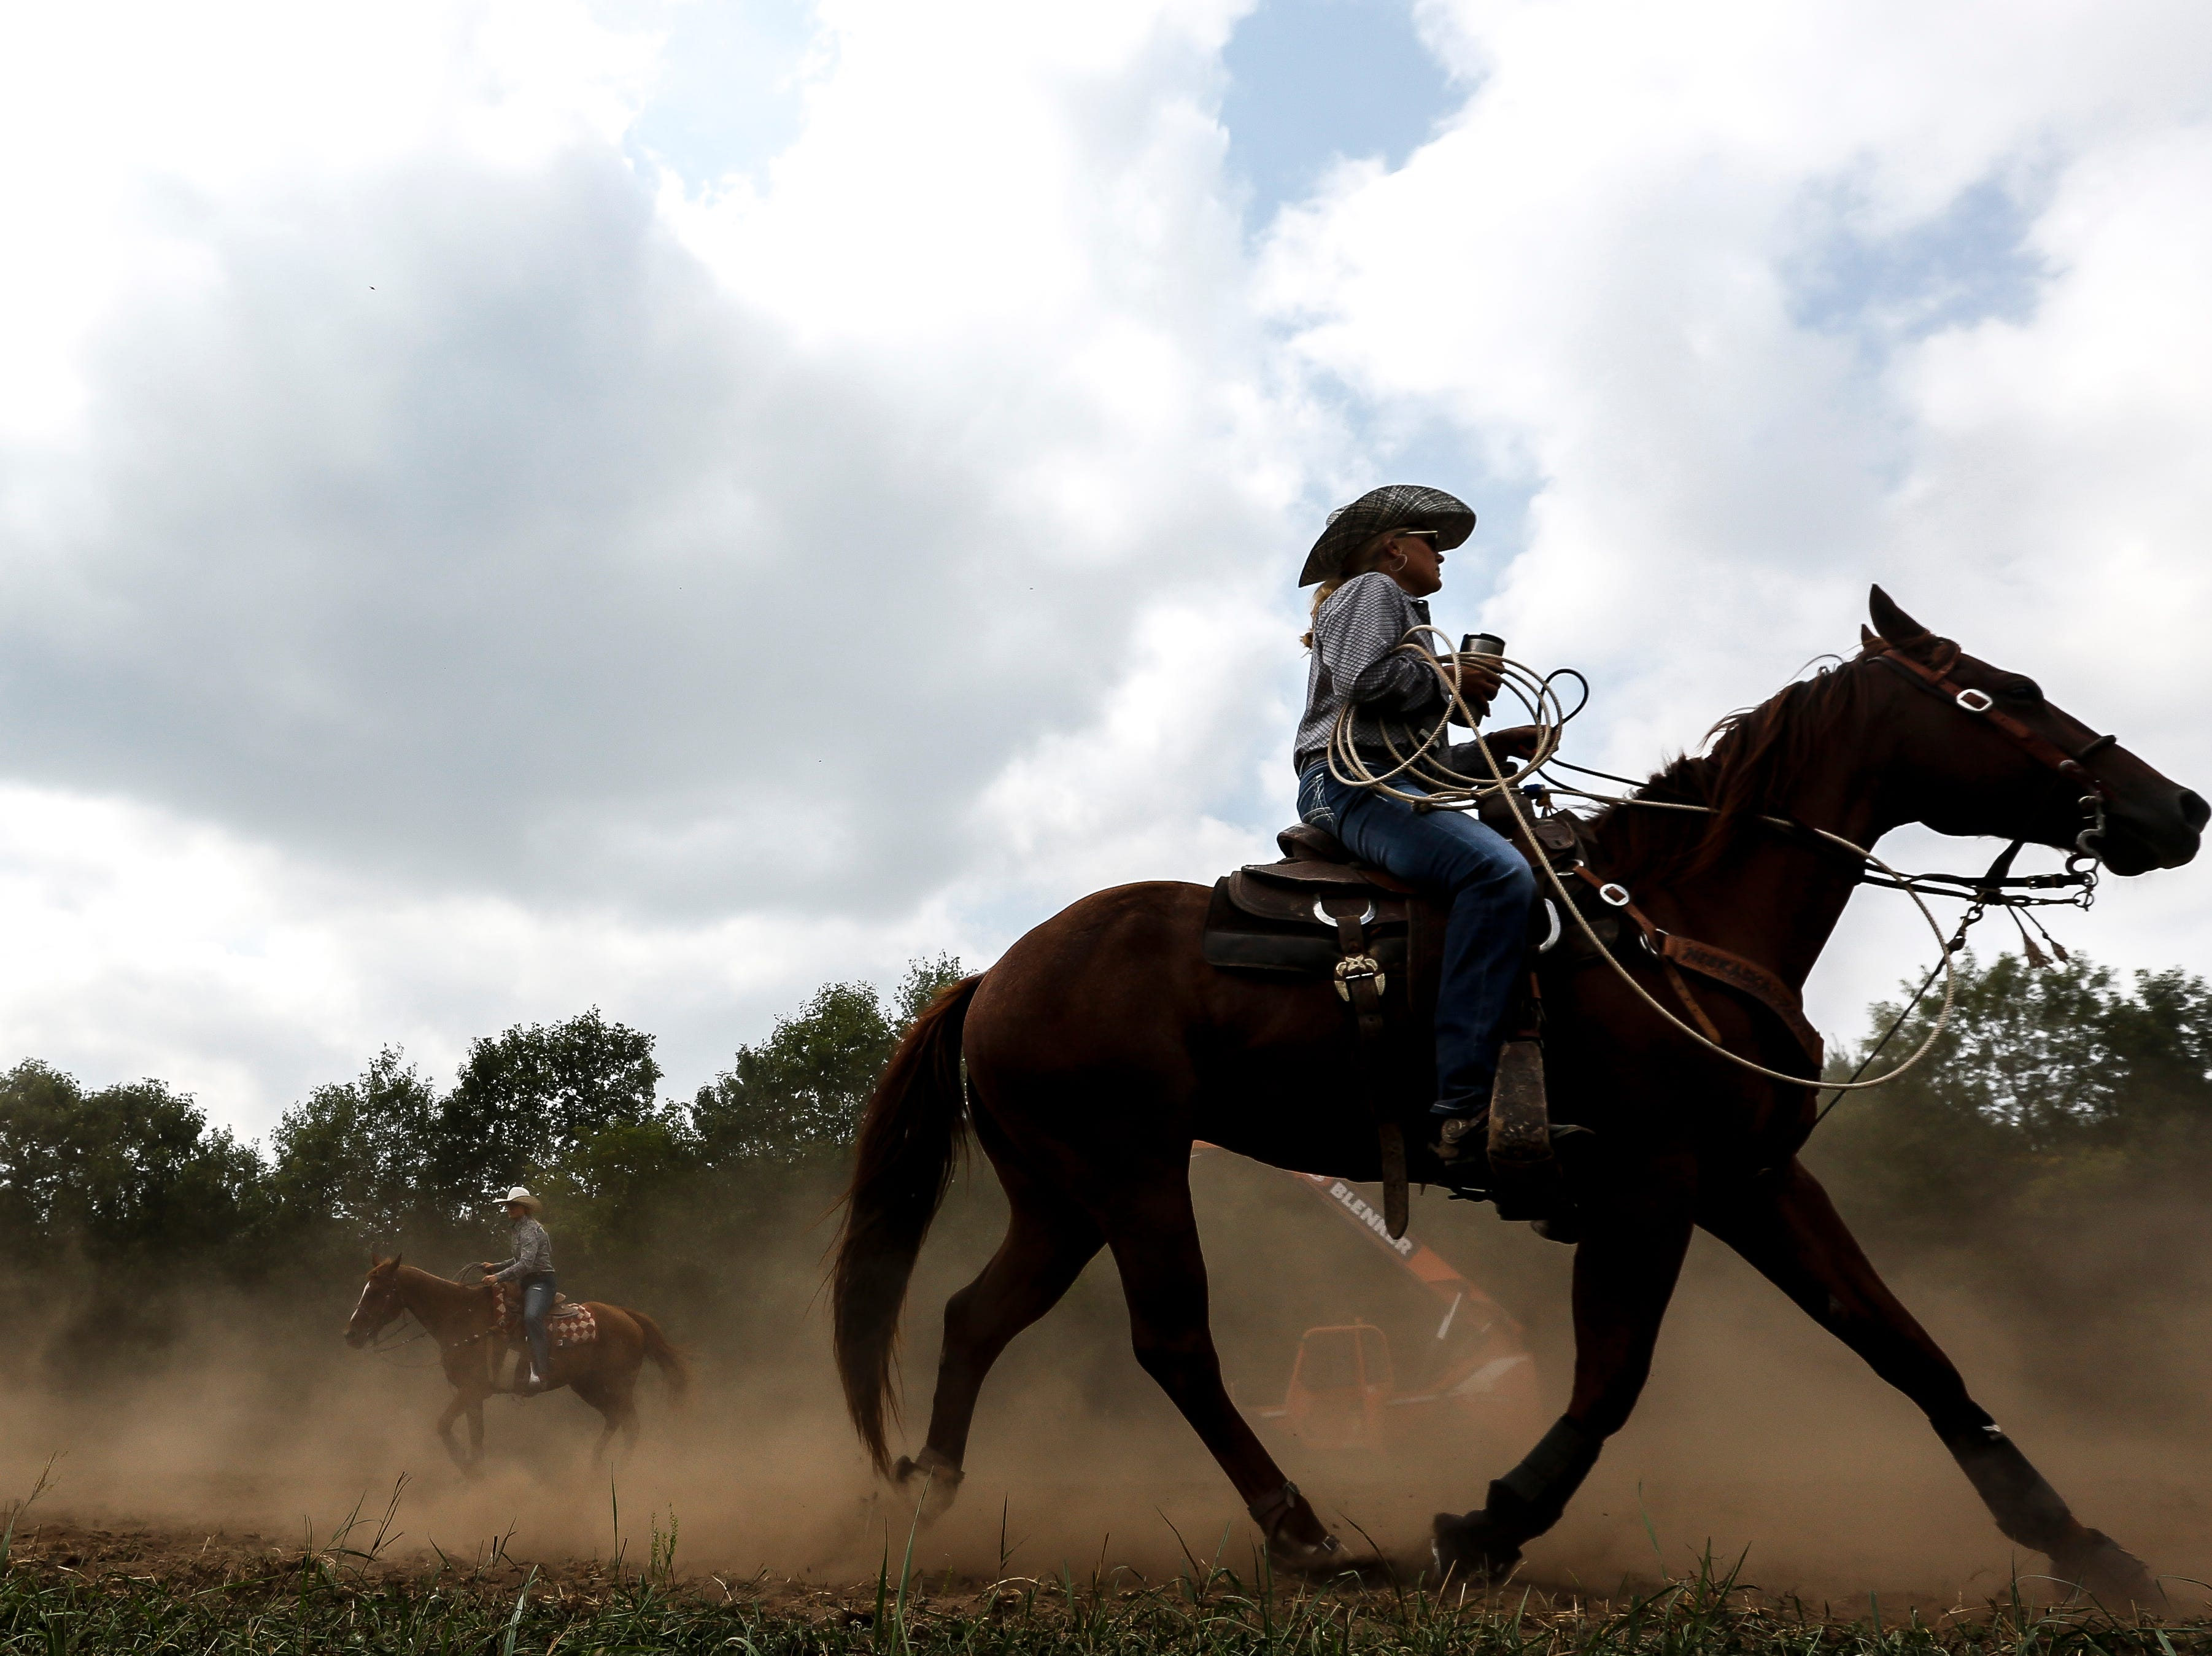 Competitors warm up during the Amherst Little Britches Wisconsin Rodeo in Amherst, Wis., August 17, 2018.